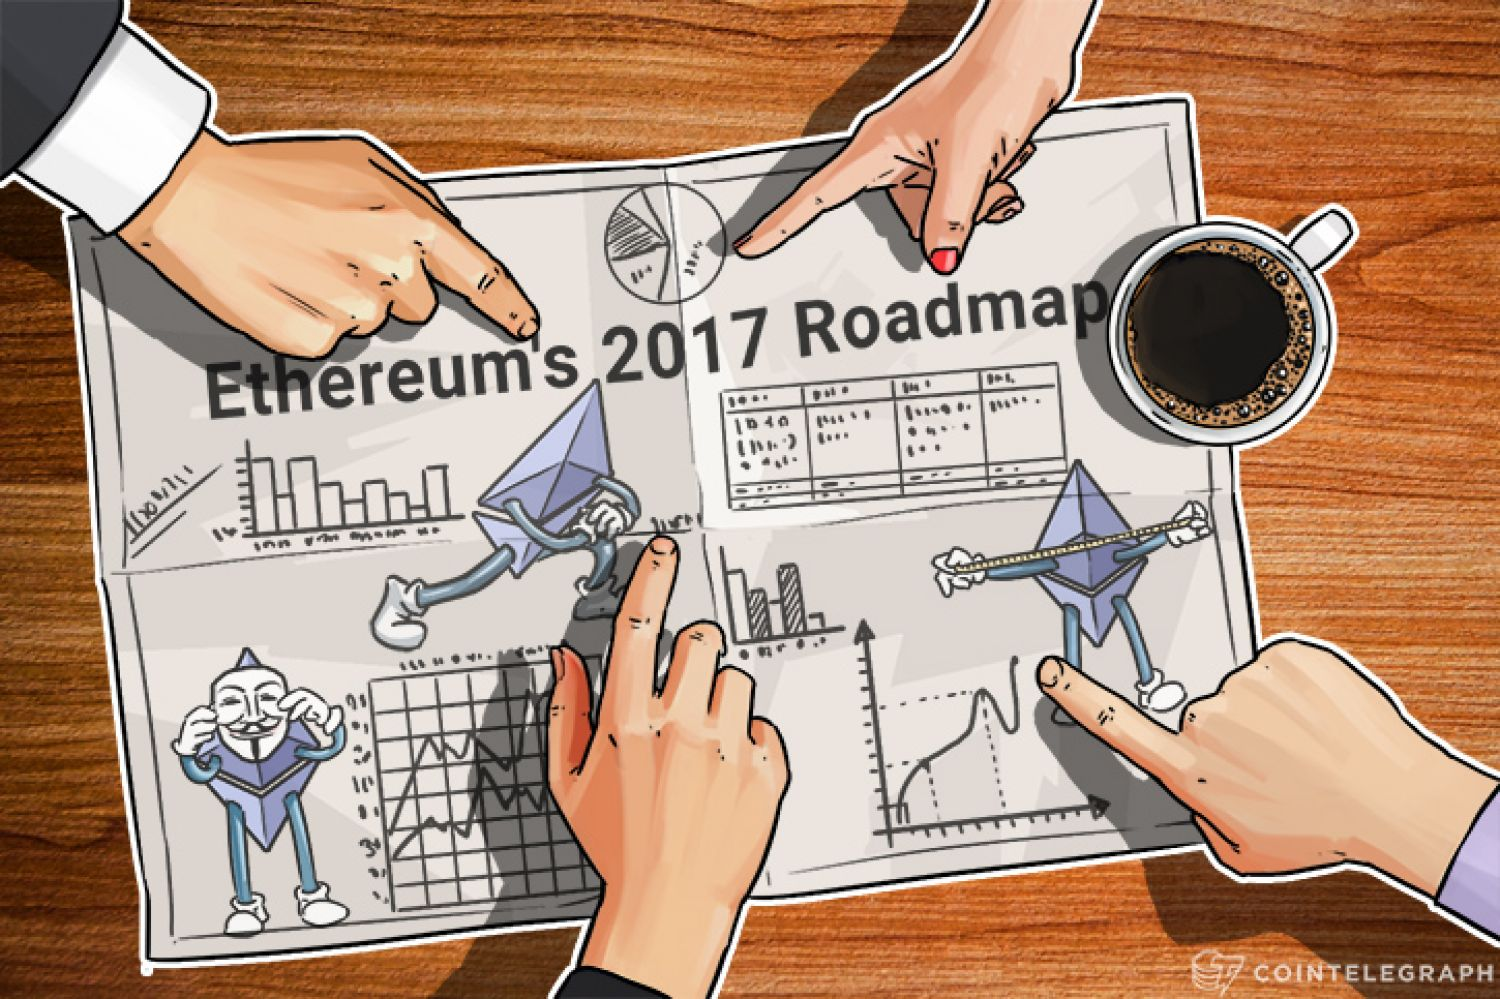 Ethereum's 2017 roadmap